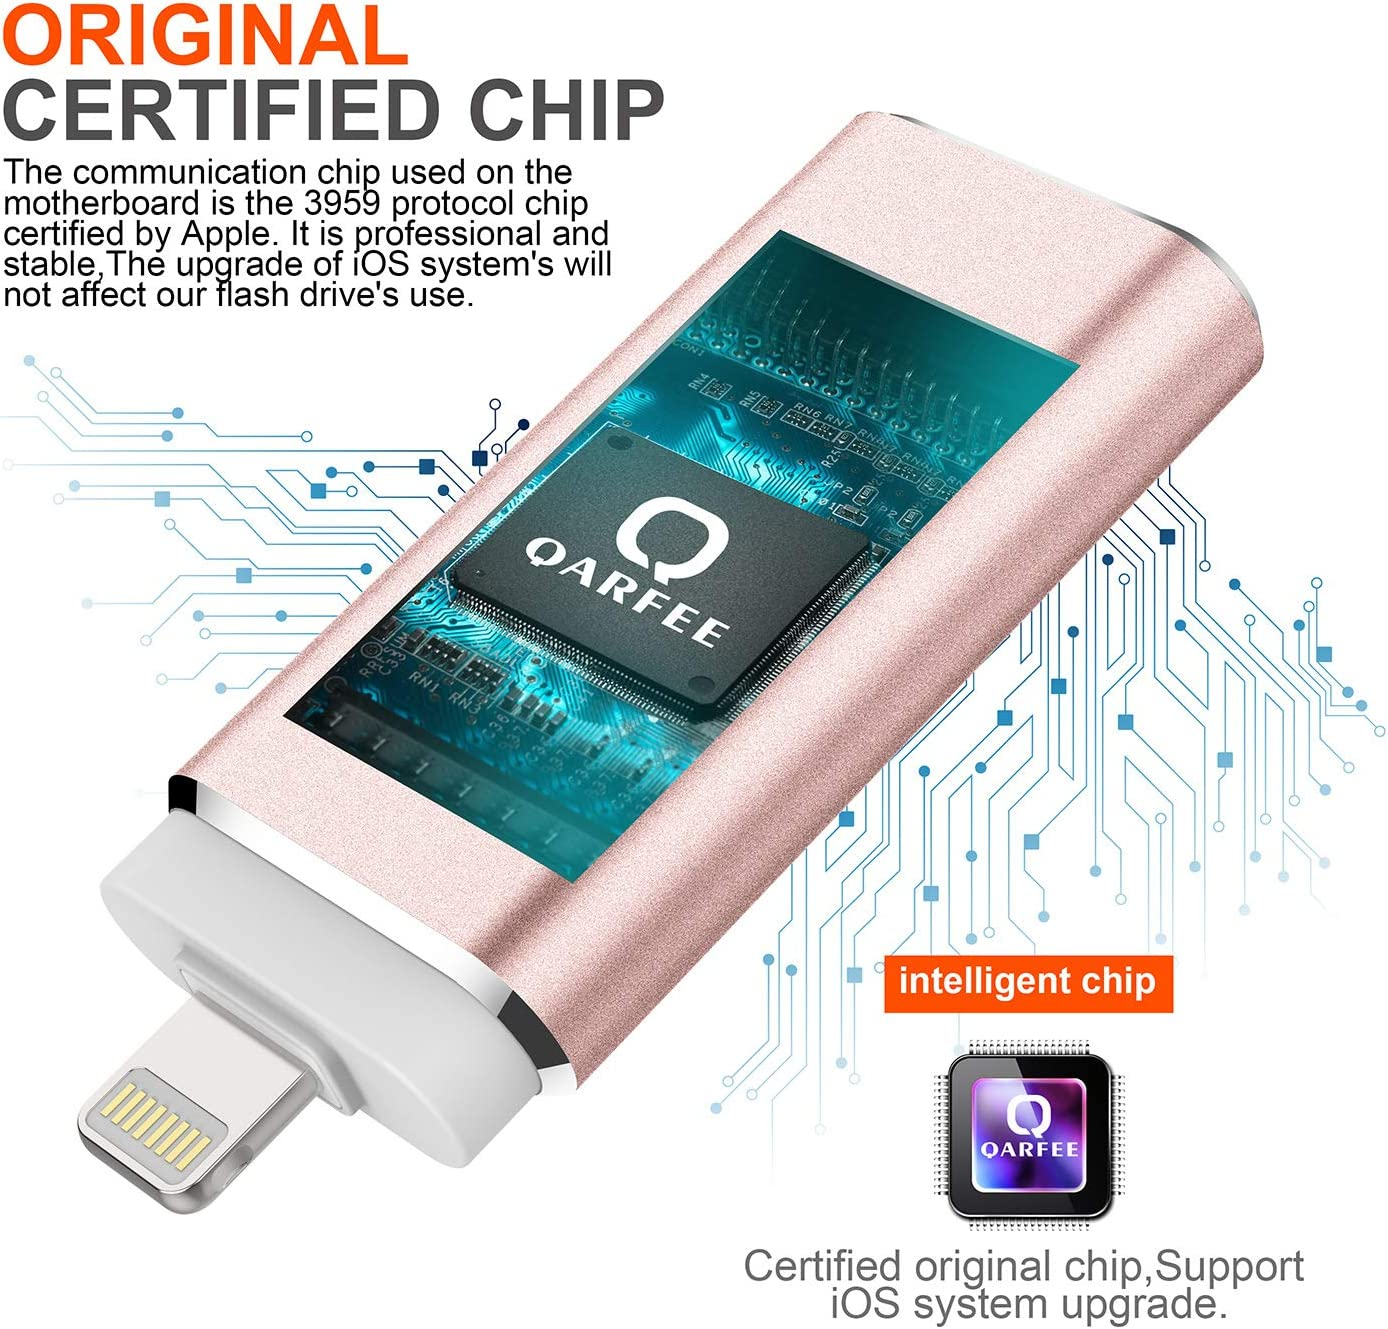 Photo Stick,QARFEE USB Jump Drive Thumb Drive Memory Stick External Storage iOS Flash Drive 32 GB Compatible for iPhone,iPad,iPod,Mac,iOS//Android Cell Phone and PC Type-c Gold